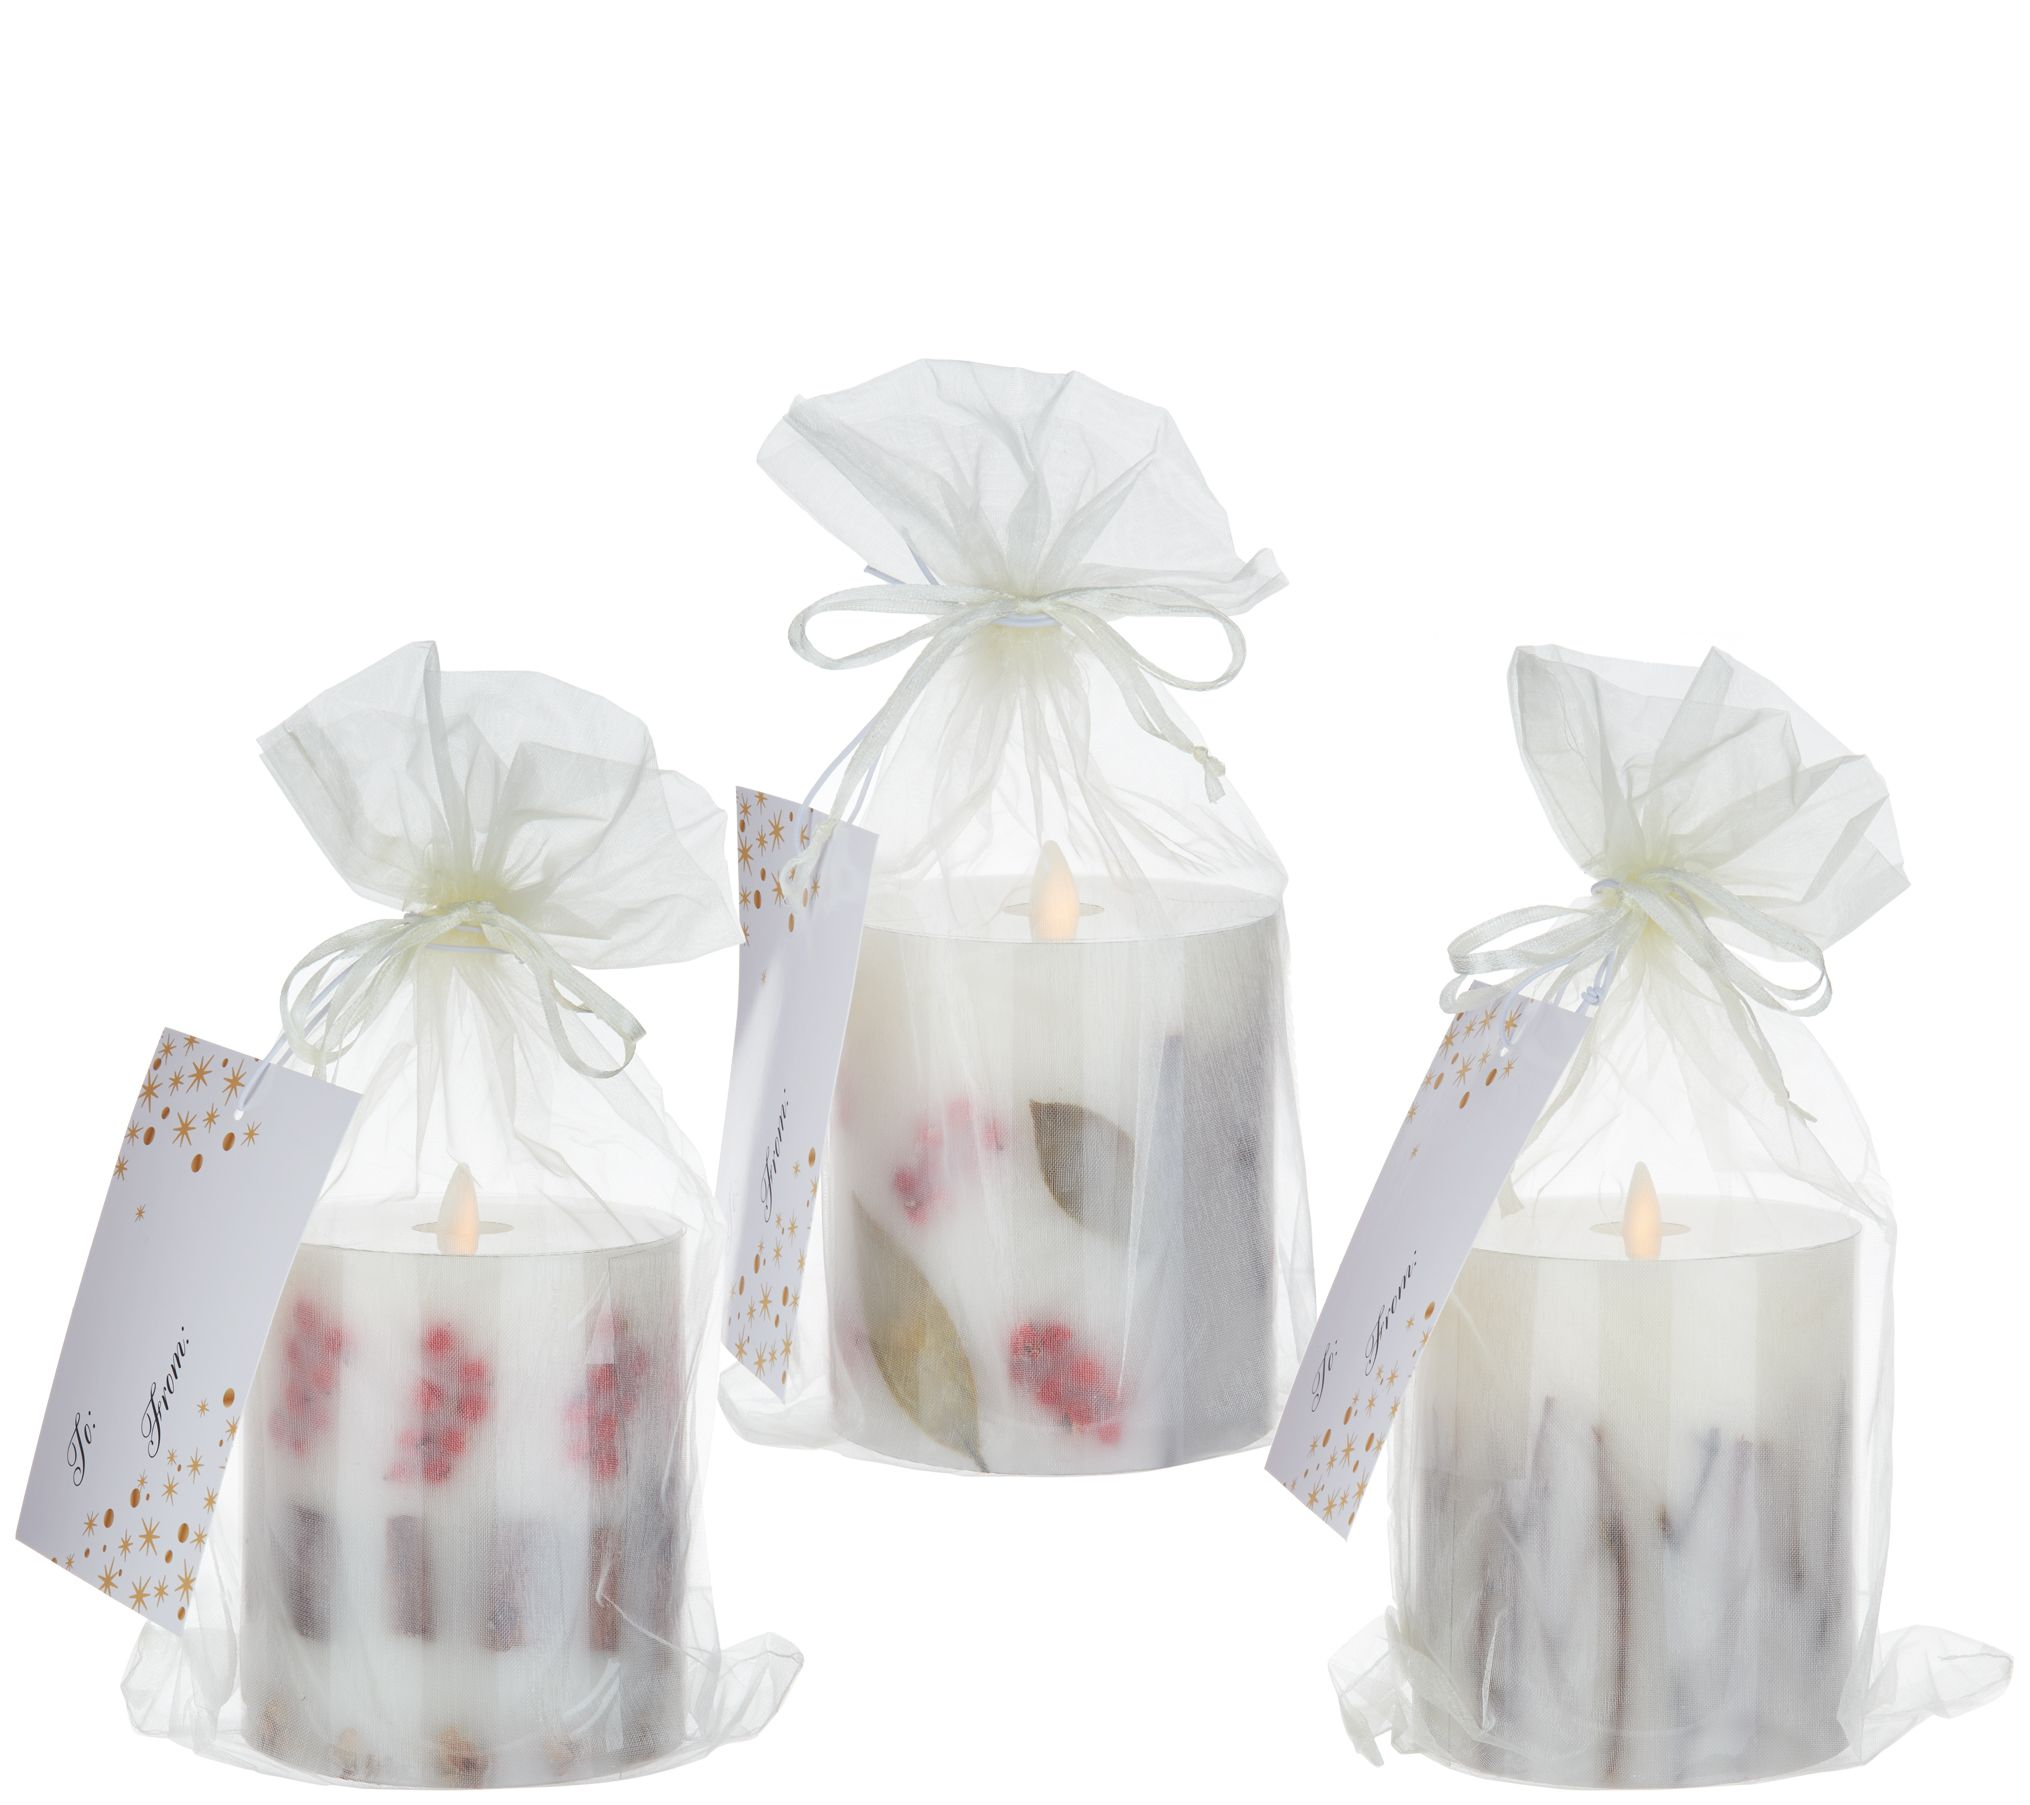 bethlehem lighting. Bethlehem Lights S/3 Embedded Holiday Scented Touch Candles - H213522 Lighting C